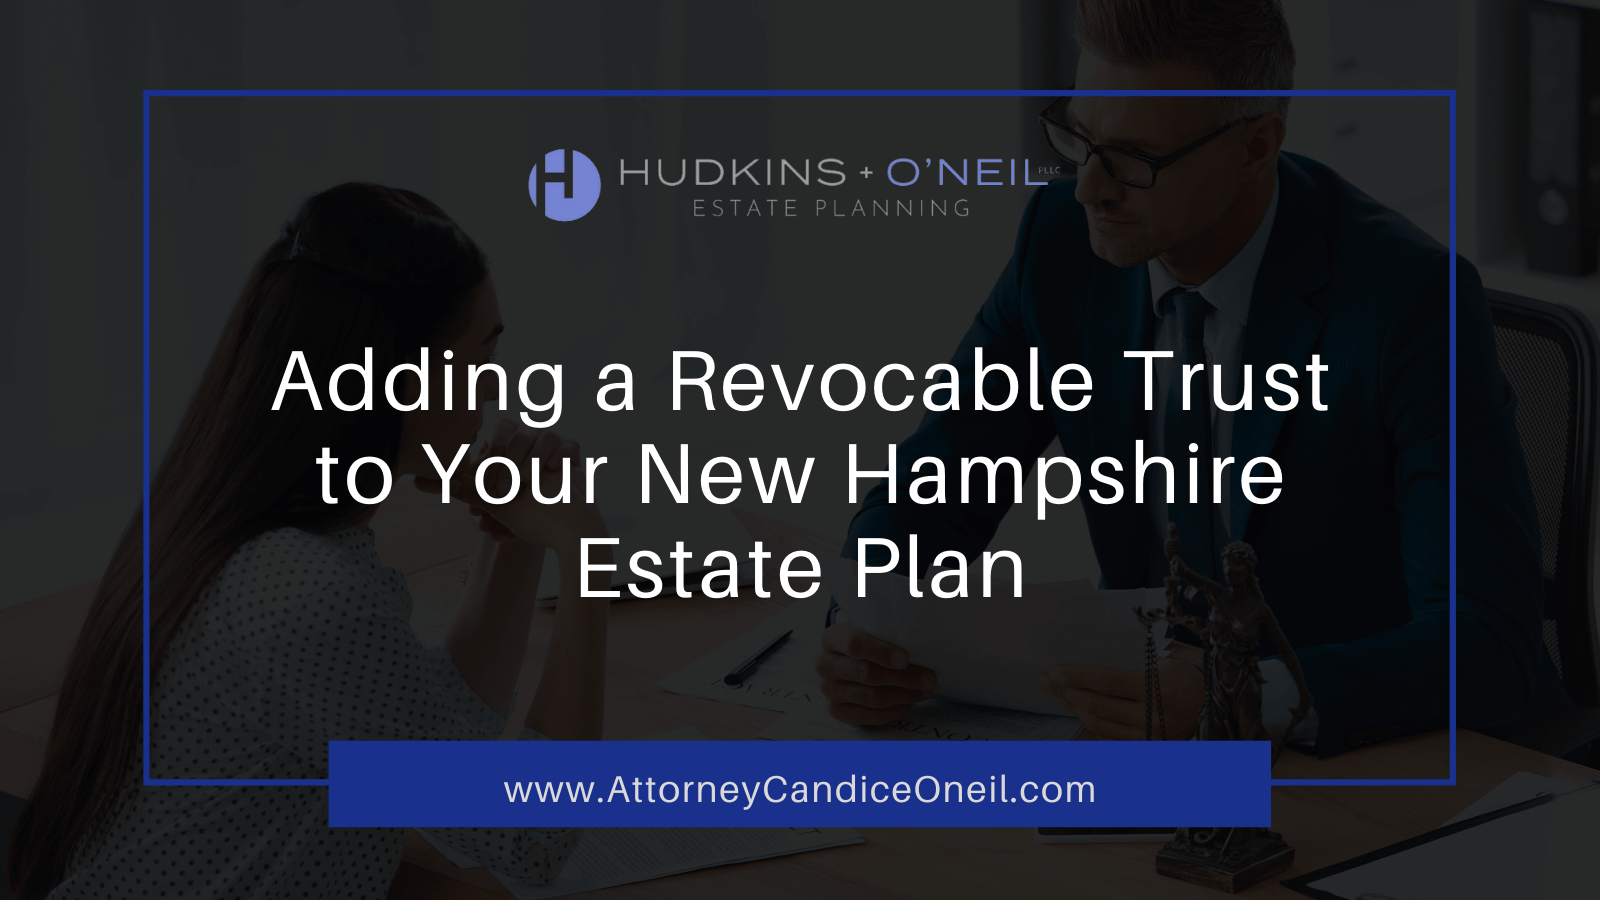 Adding a Revocable Trust to Your New Hampshire Estate Plan